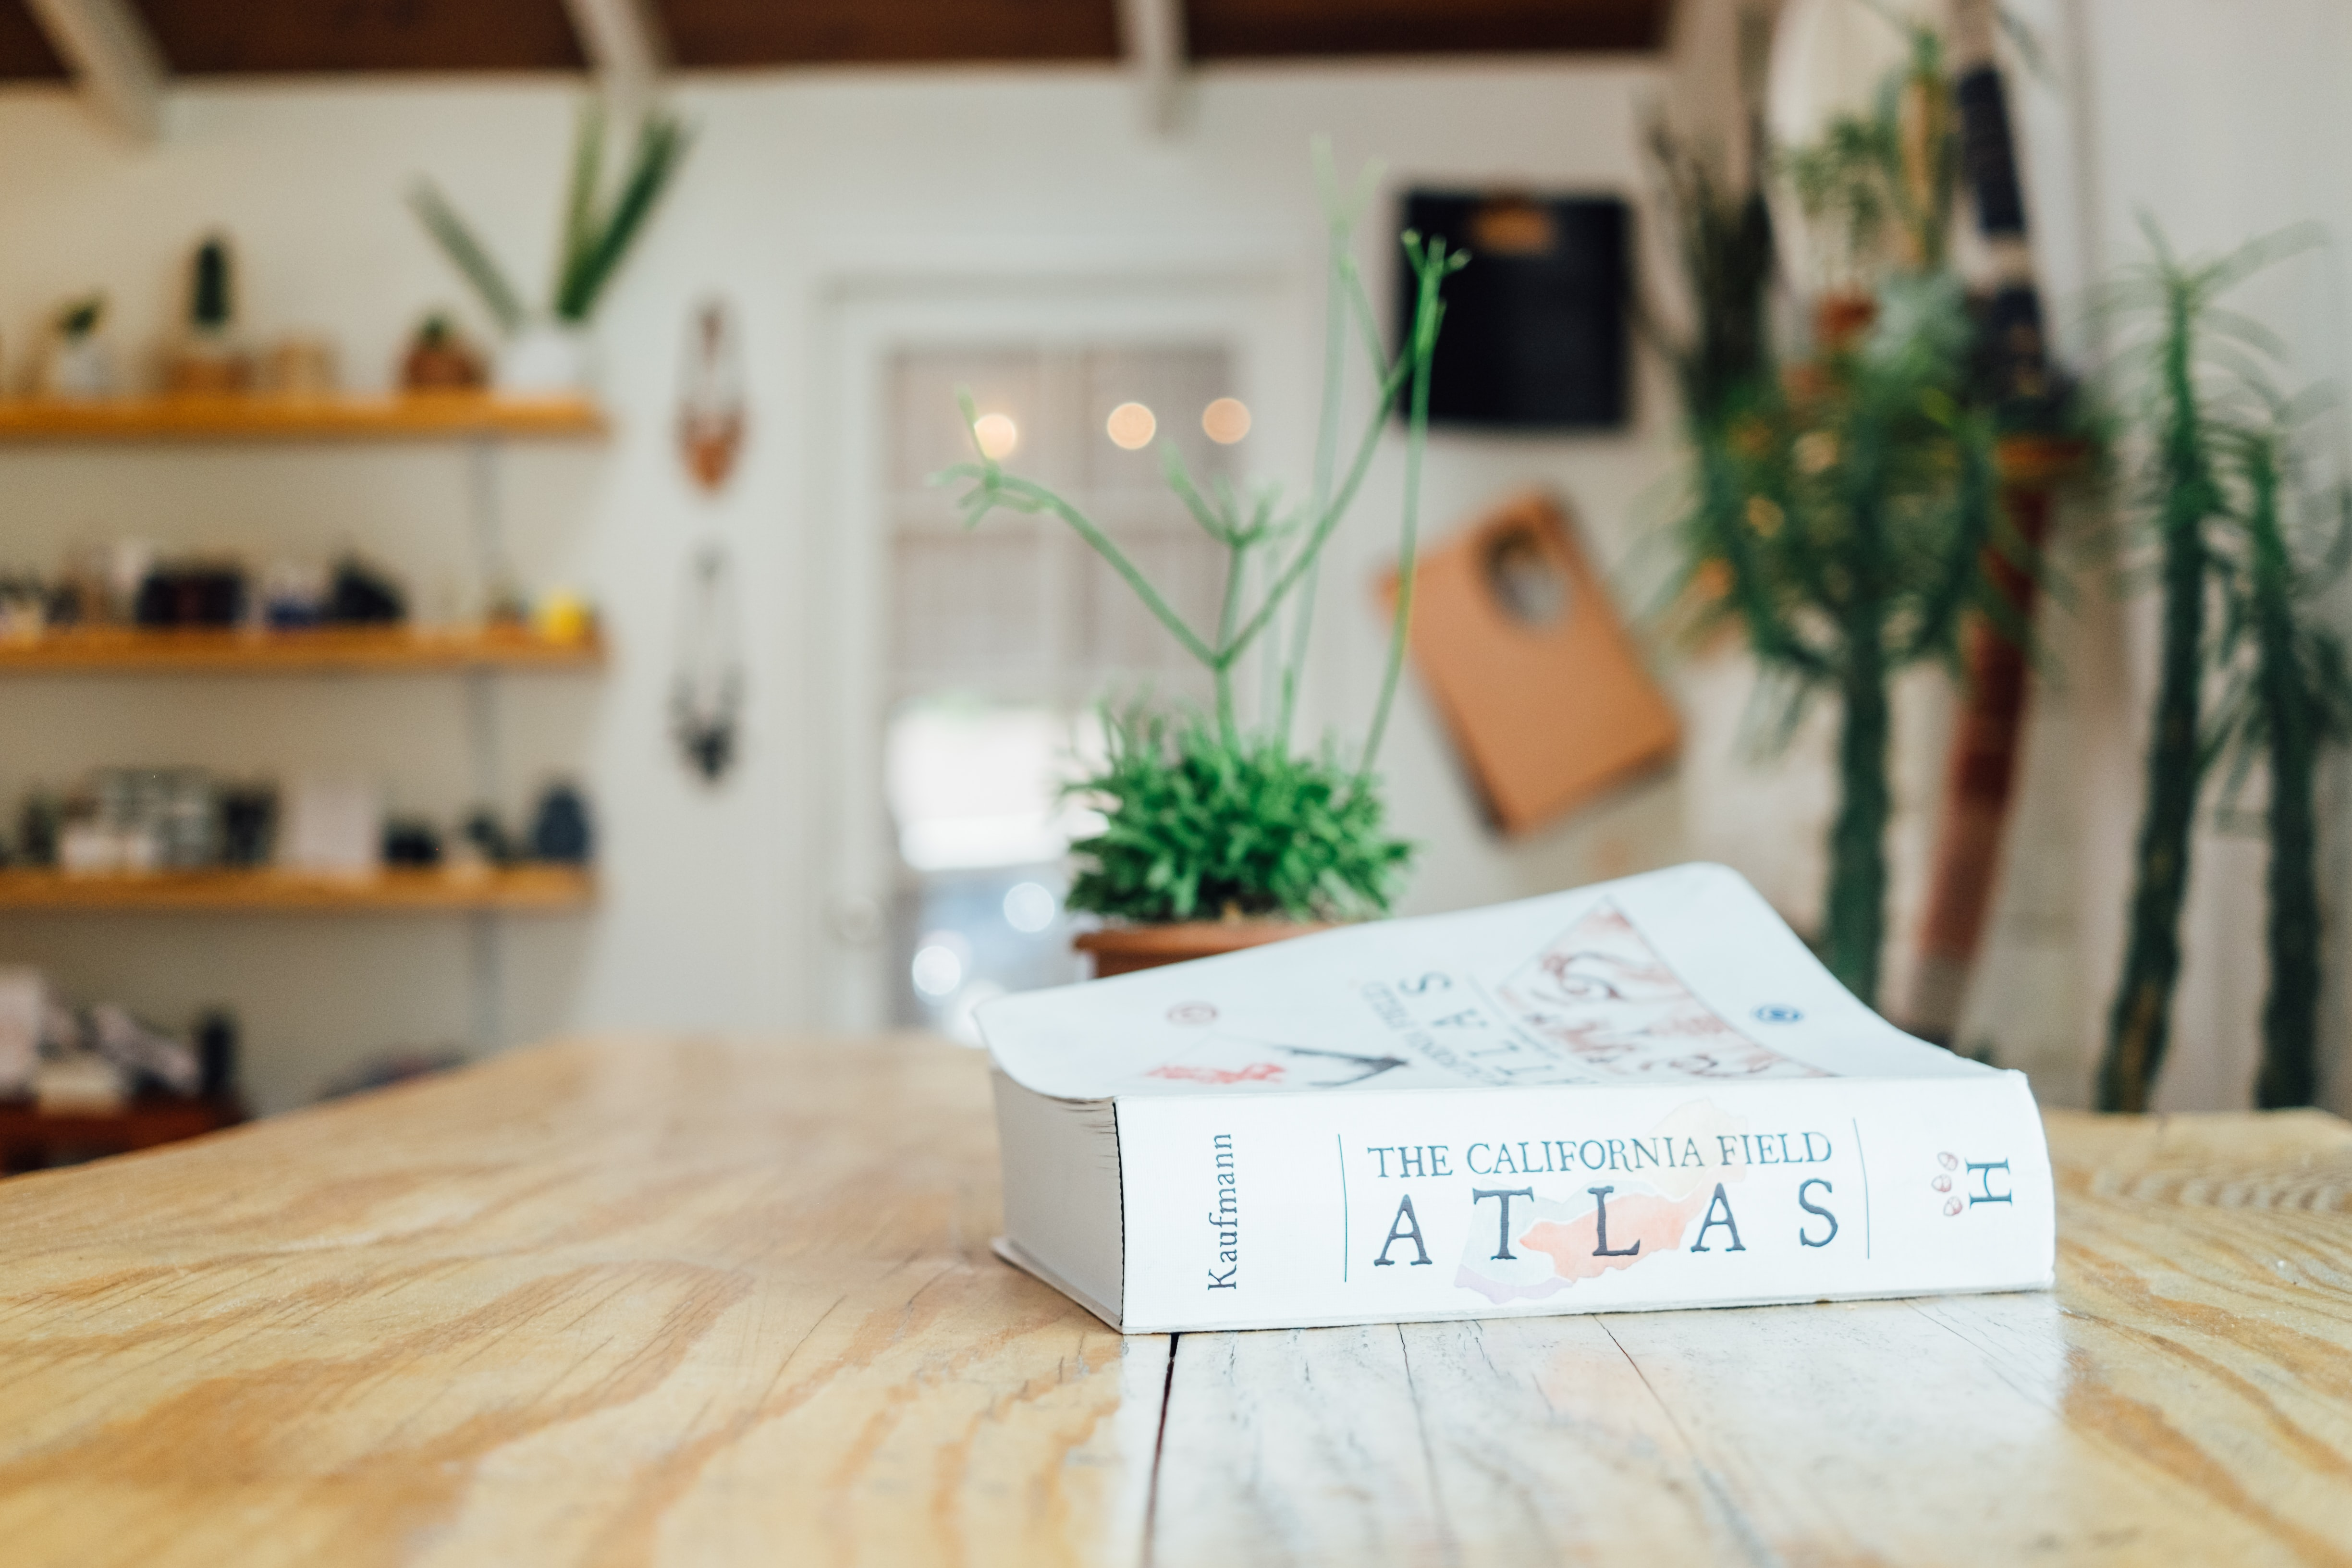 Atlas book on table surface